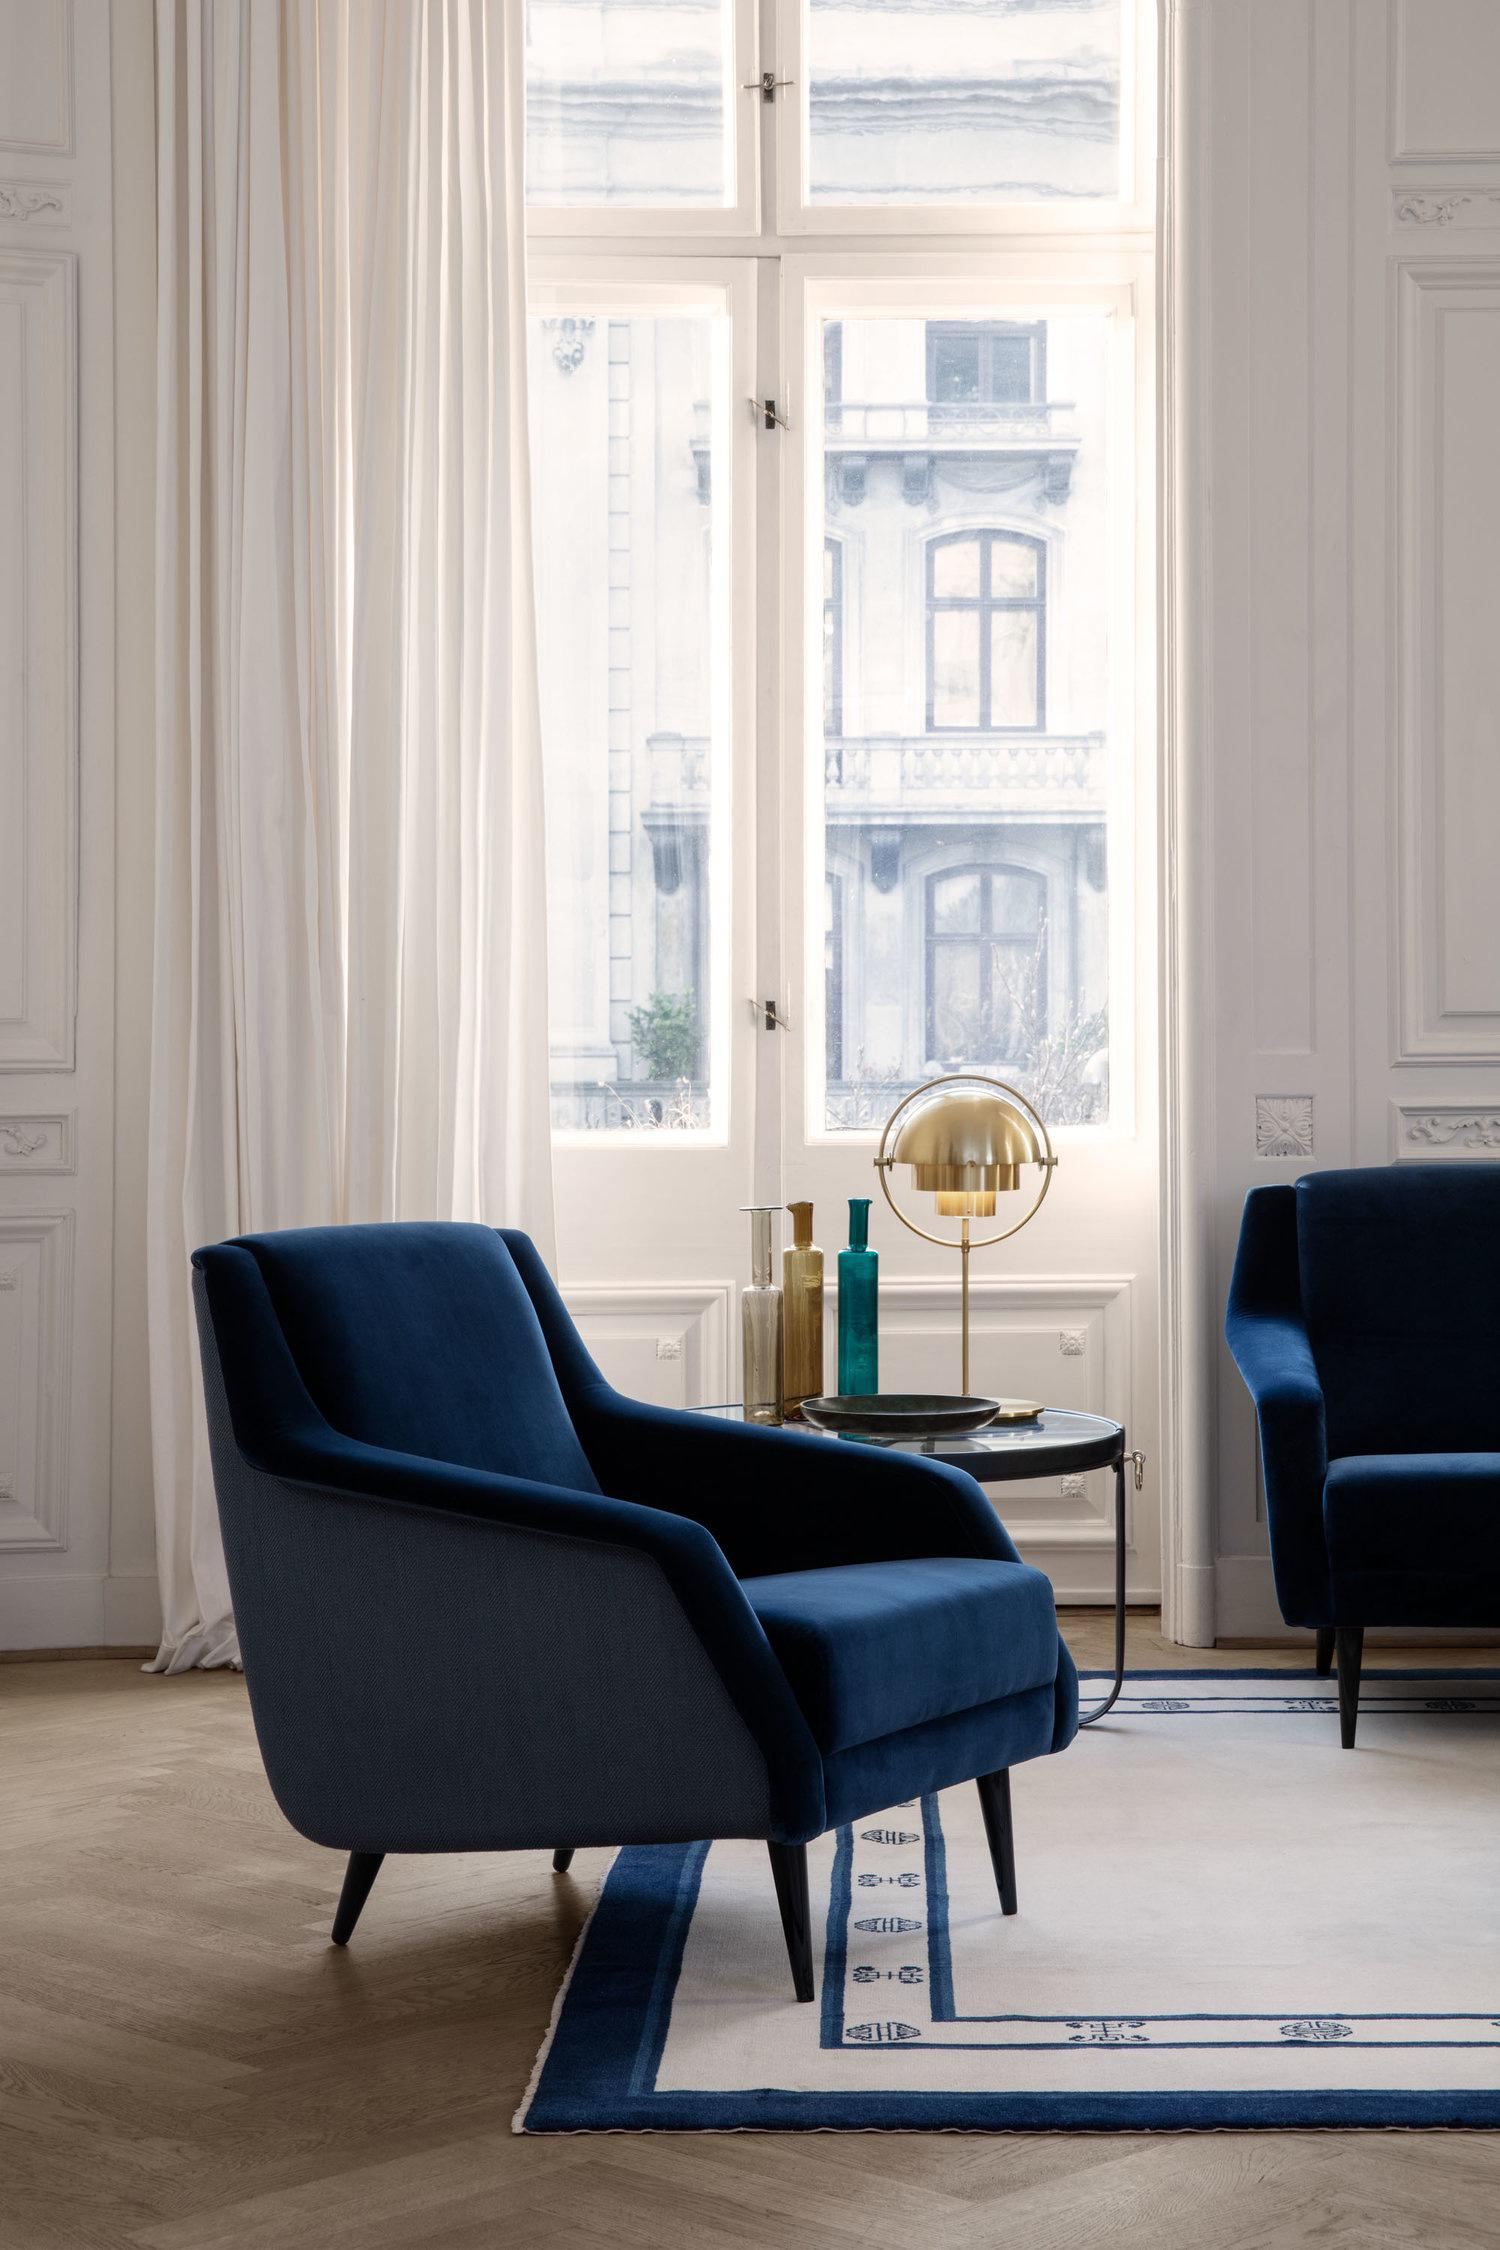 Pantone Colour of 2020: Classic Blue